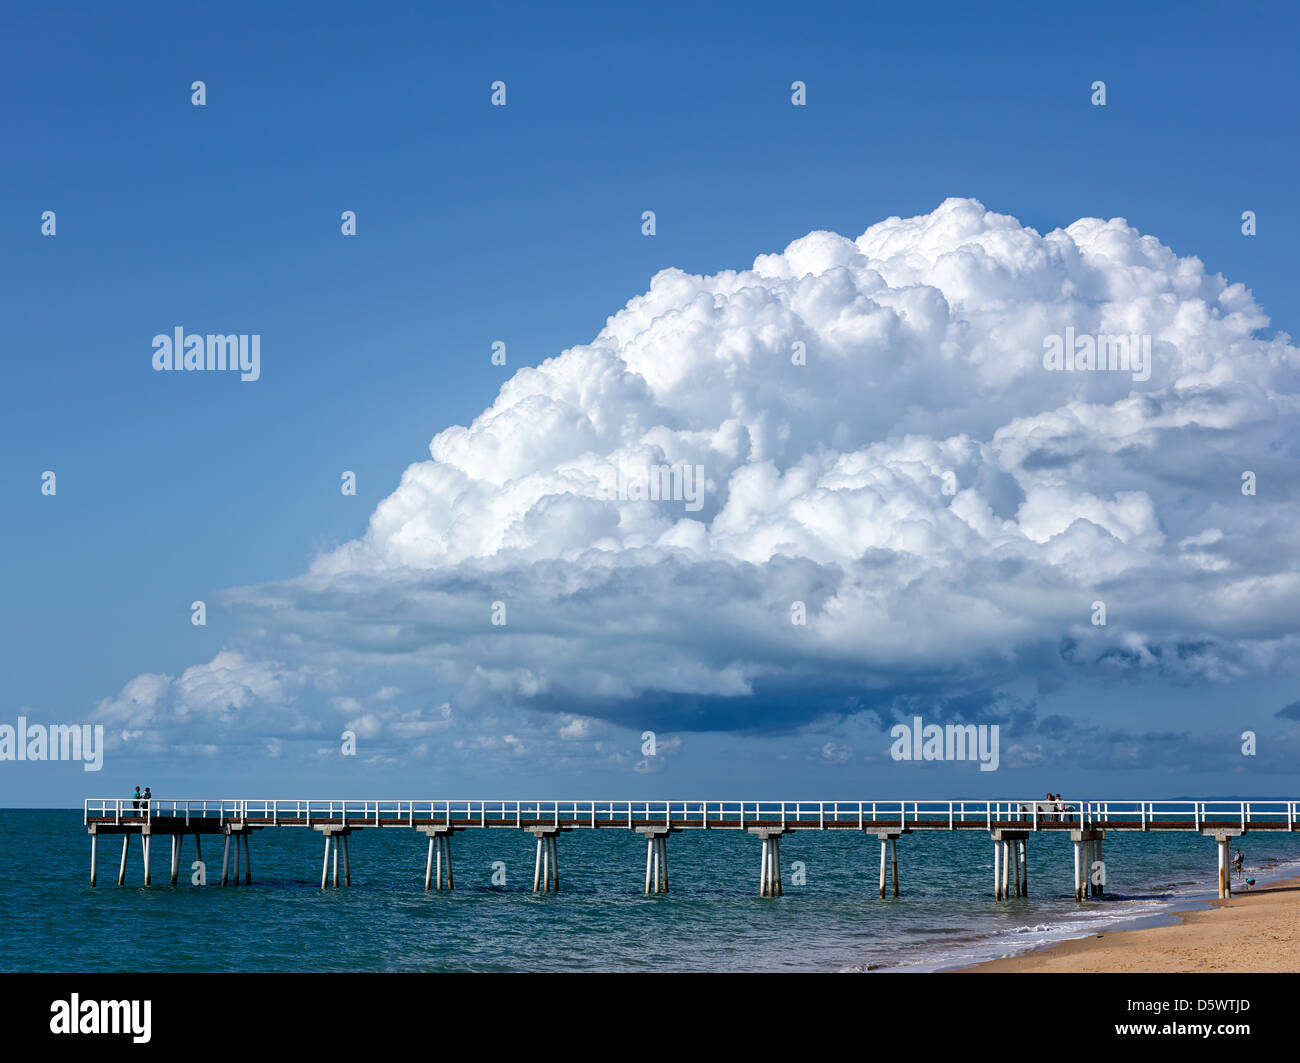 Storm clouds forming over the Coral Sea at Hervey Bay. Torquay Pier in foreground. - Stock Image